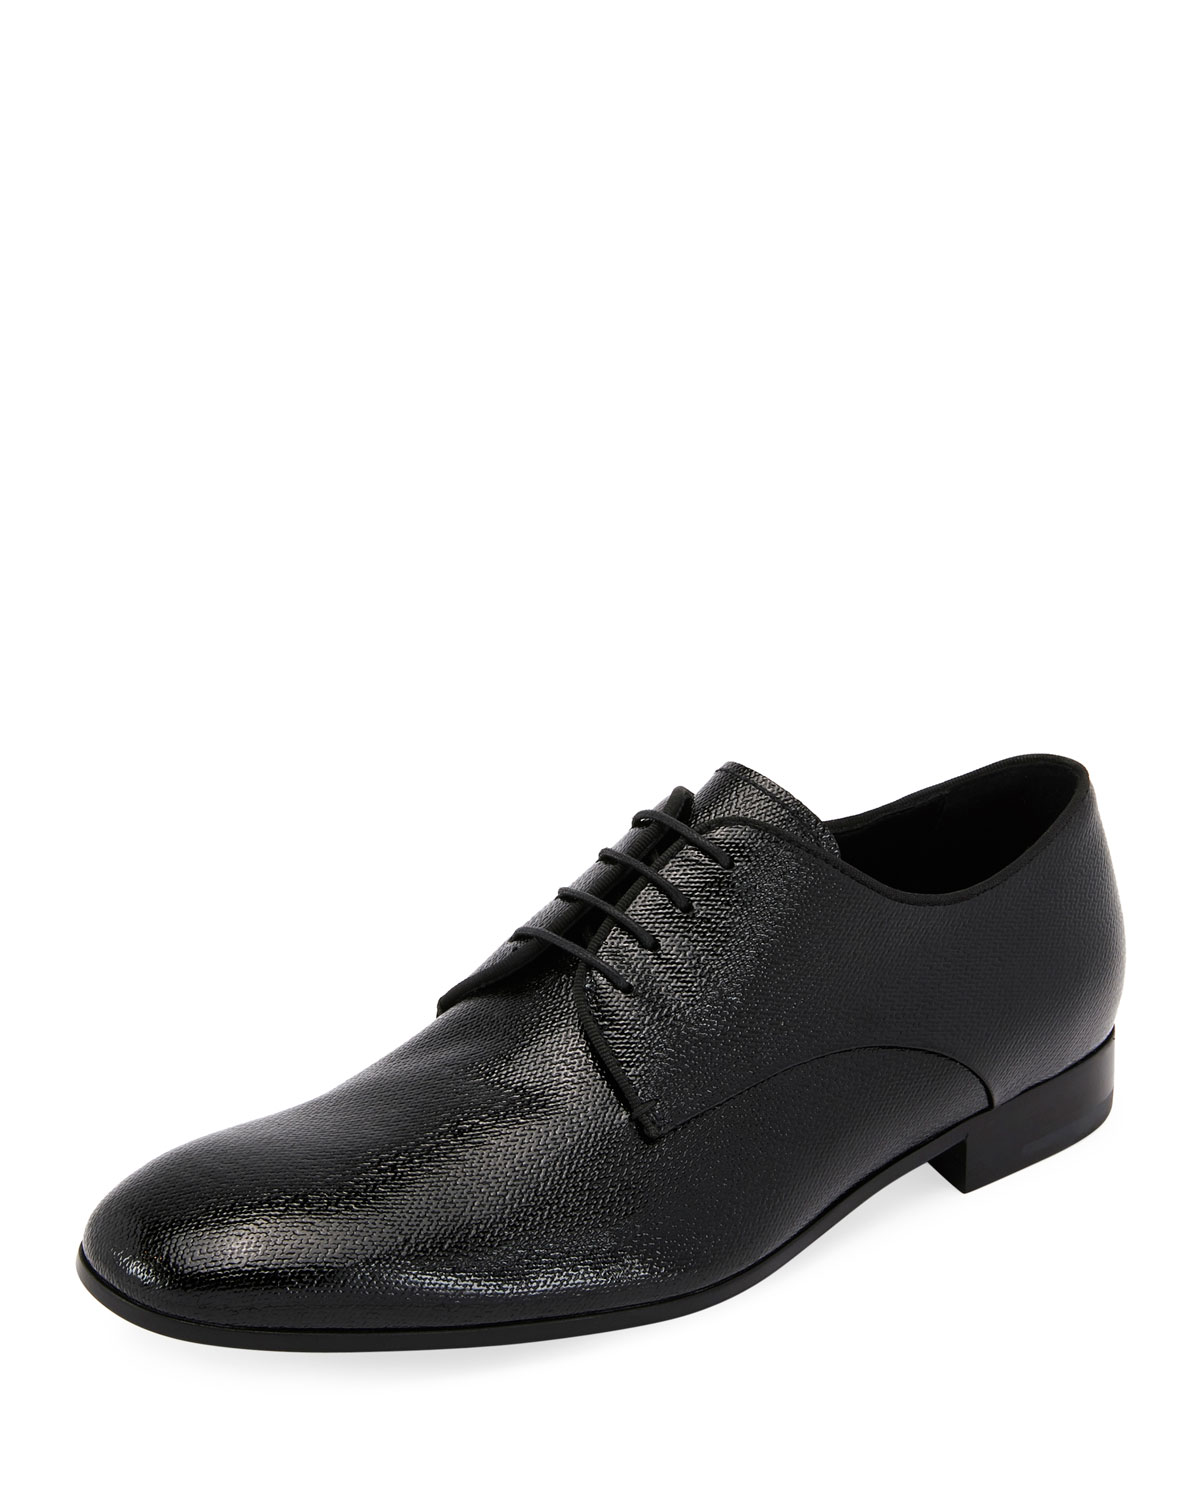 competitive price 8834a 55d1a Vernice Olona Textured Leather Oxford Shoe